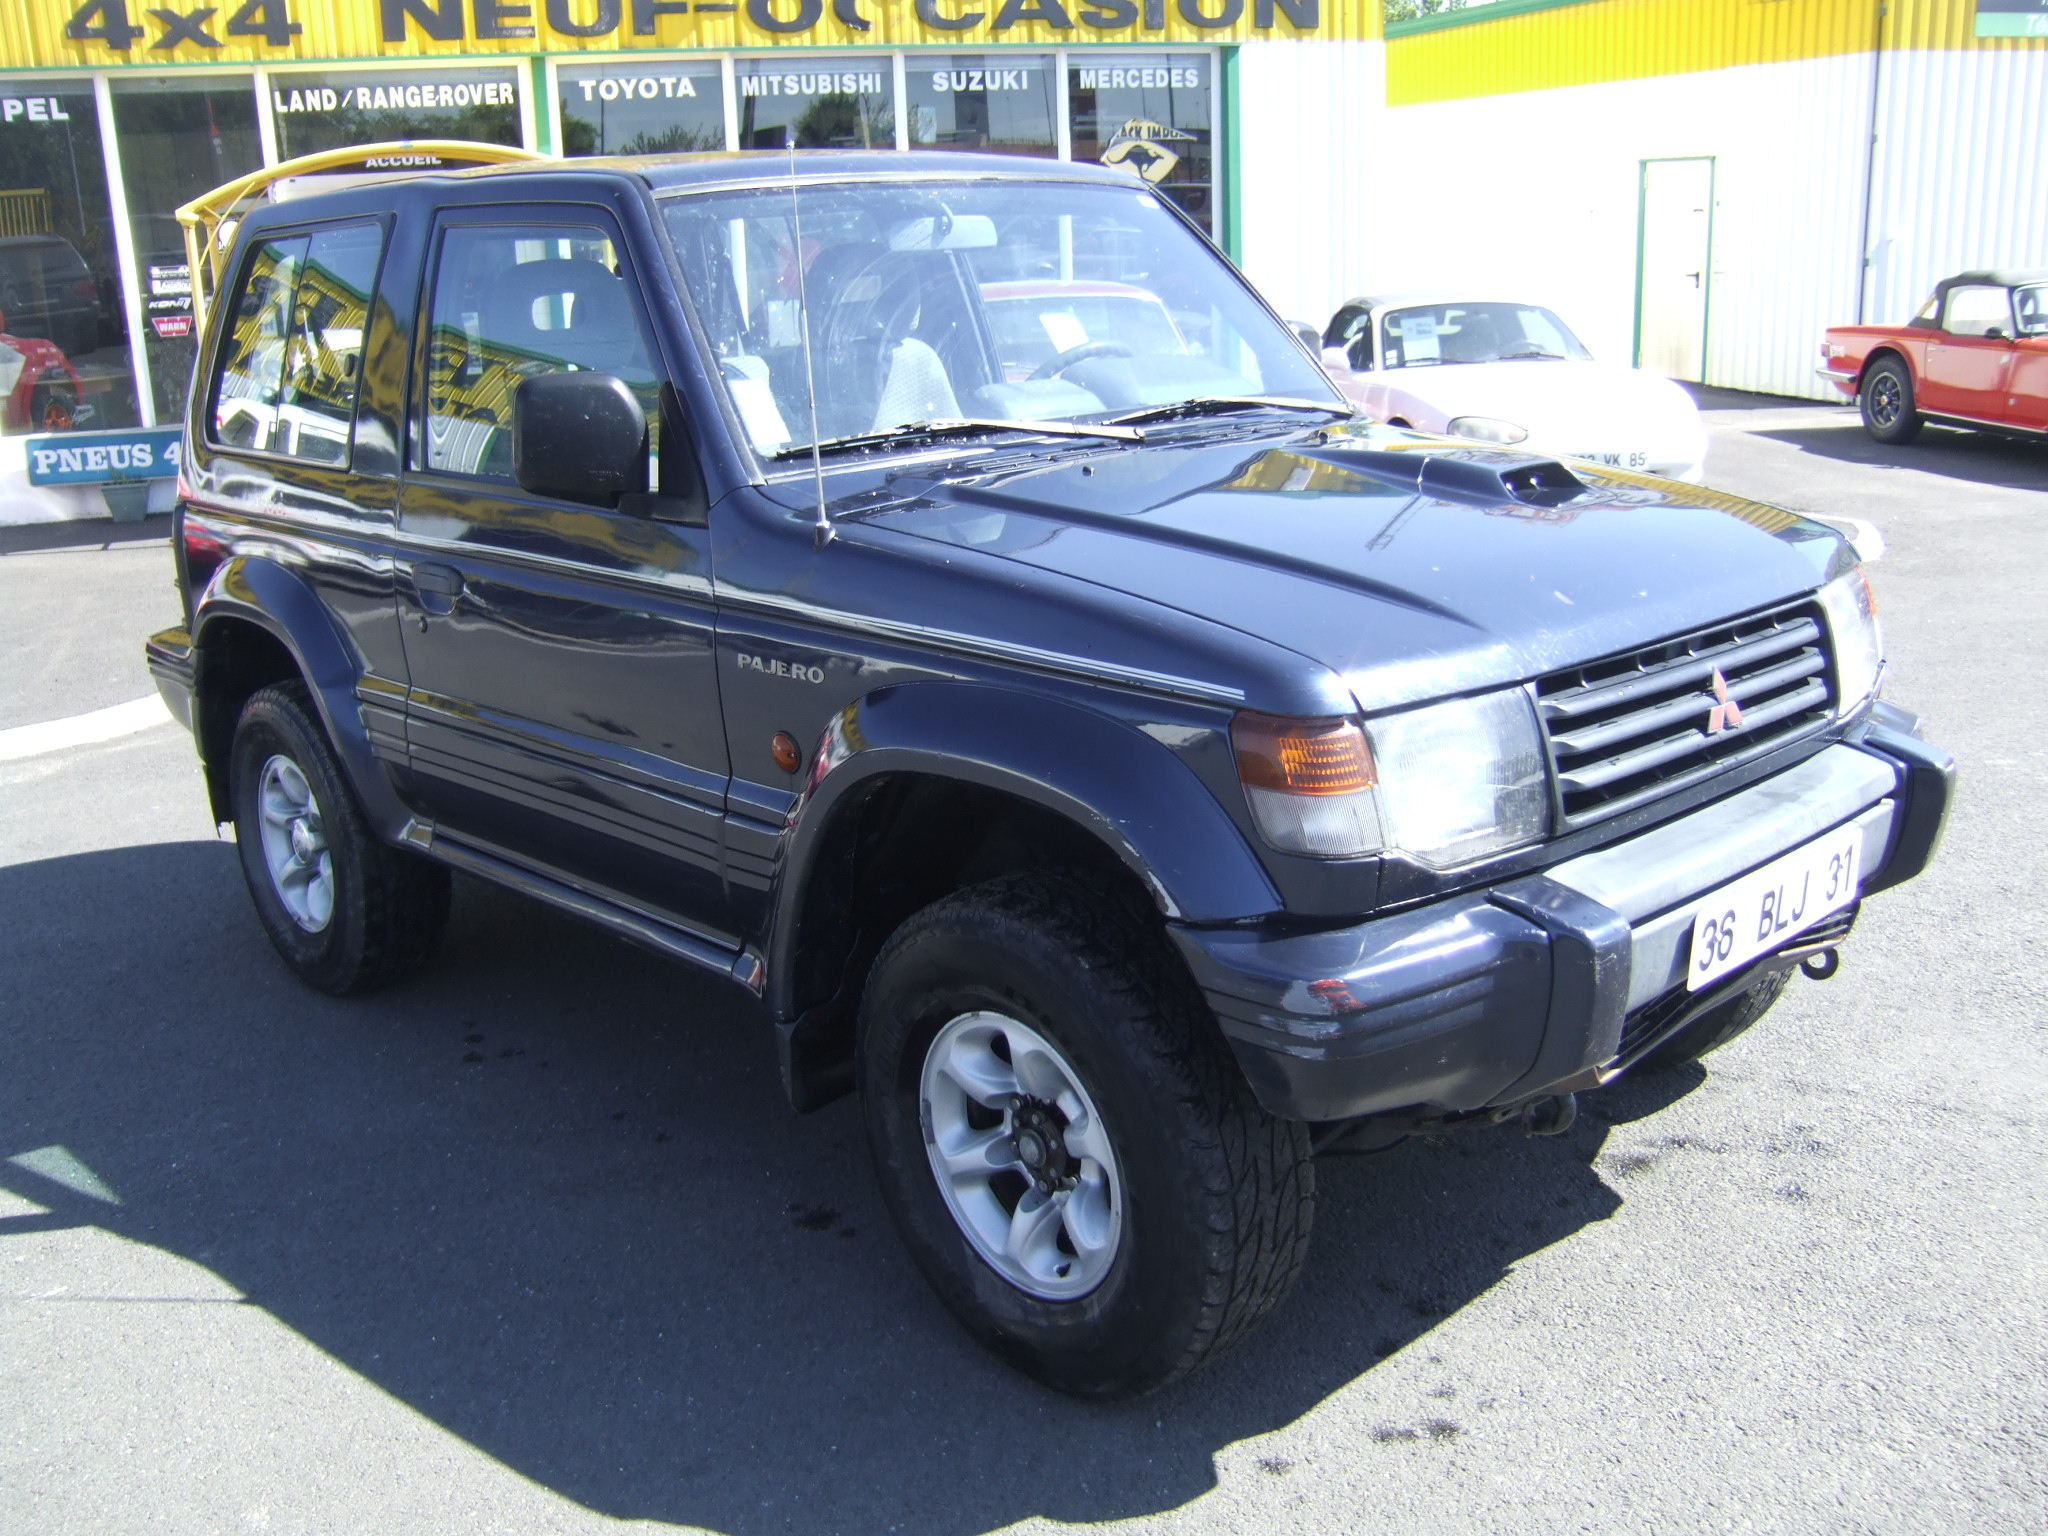 voiture mitsubishi pajero 2 8 l glx 125 cv 4x4 occasion diesel 1996 324550 km 6000. Black Bedroom Furniture Sets. Home Design Ideas